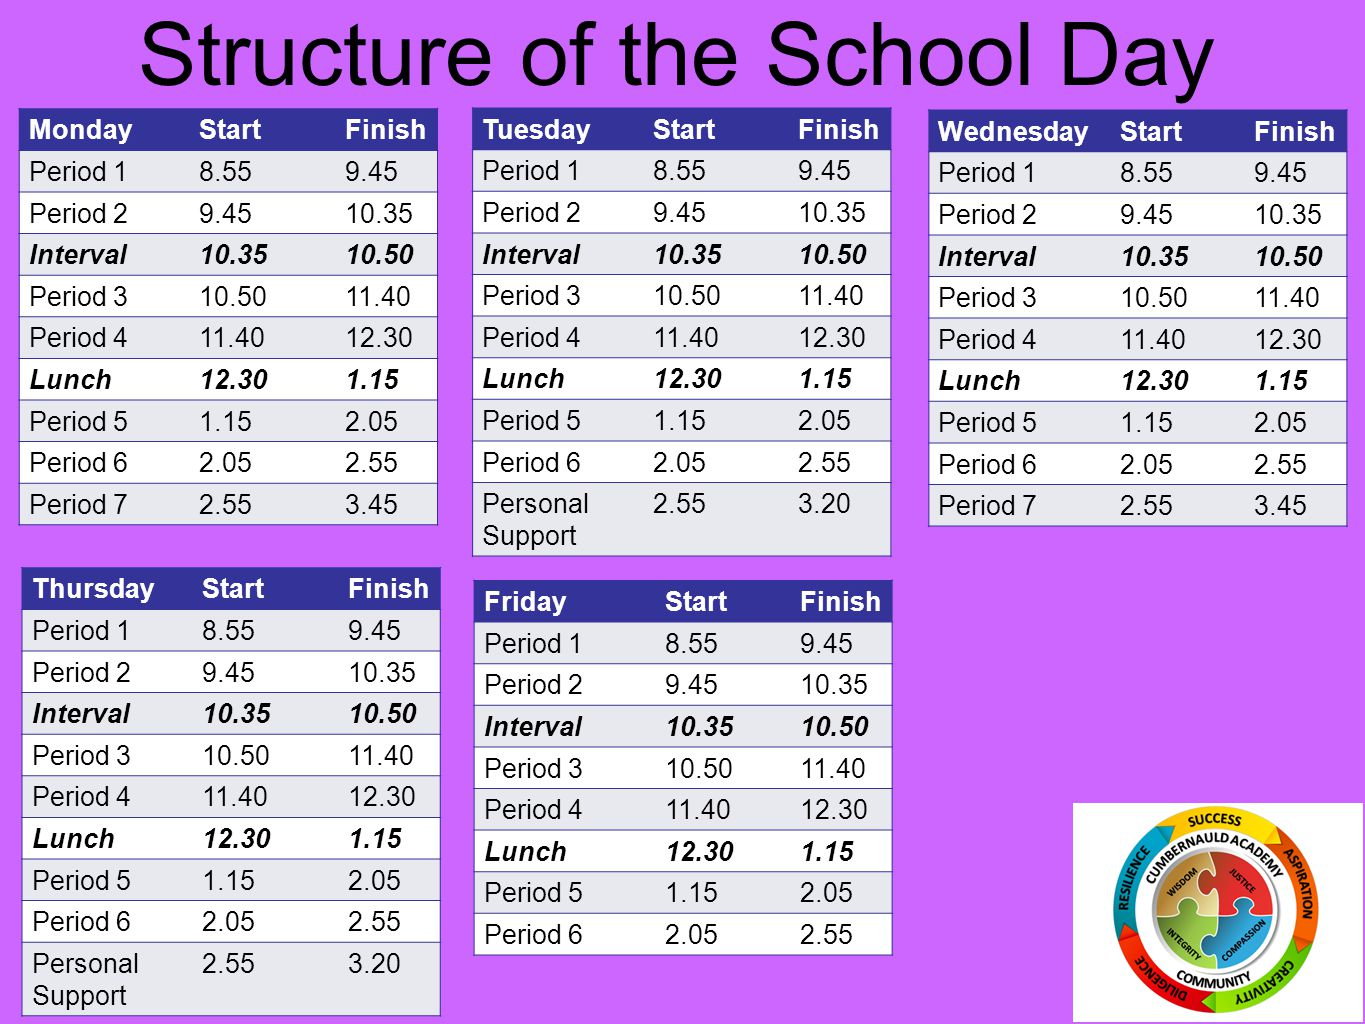 Structure of the School Day